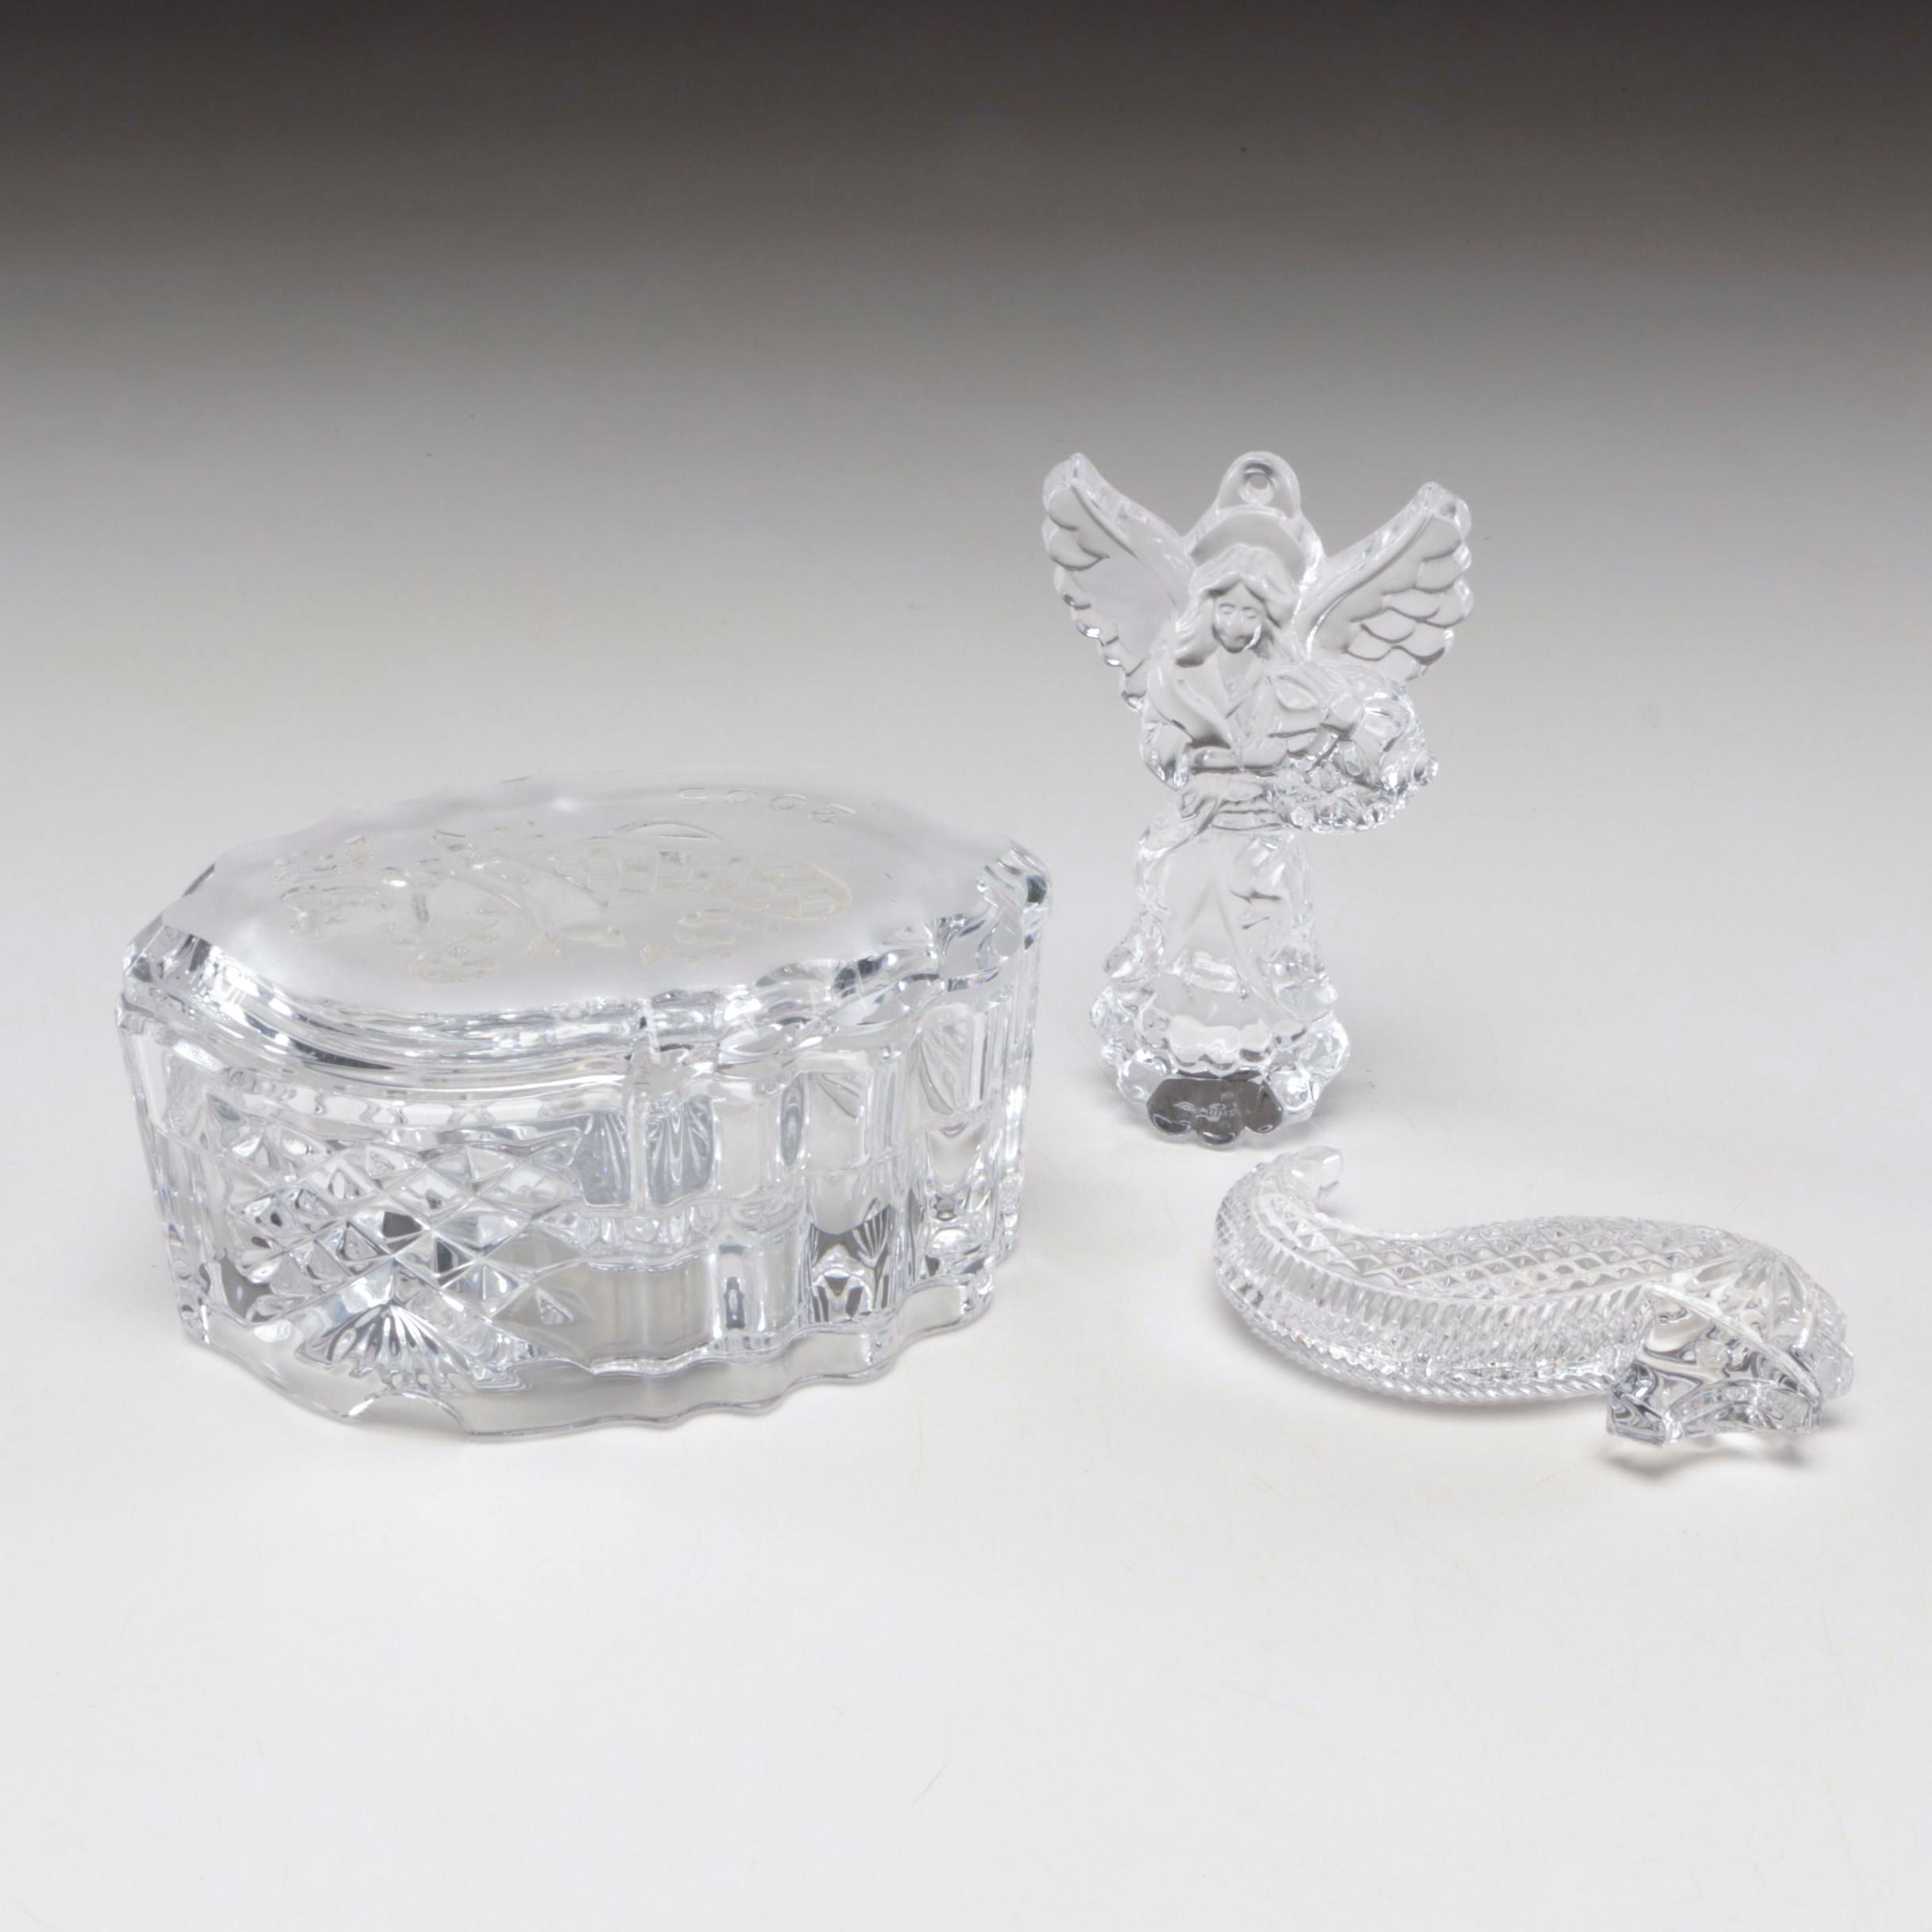 Waterford Crystal Figurines and 2004 Music Trinket Box